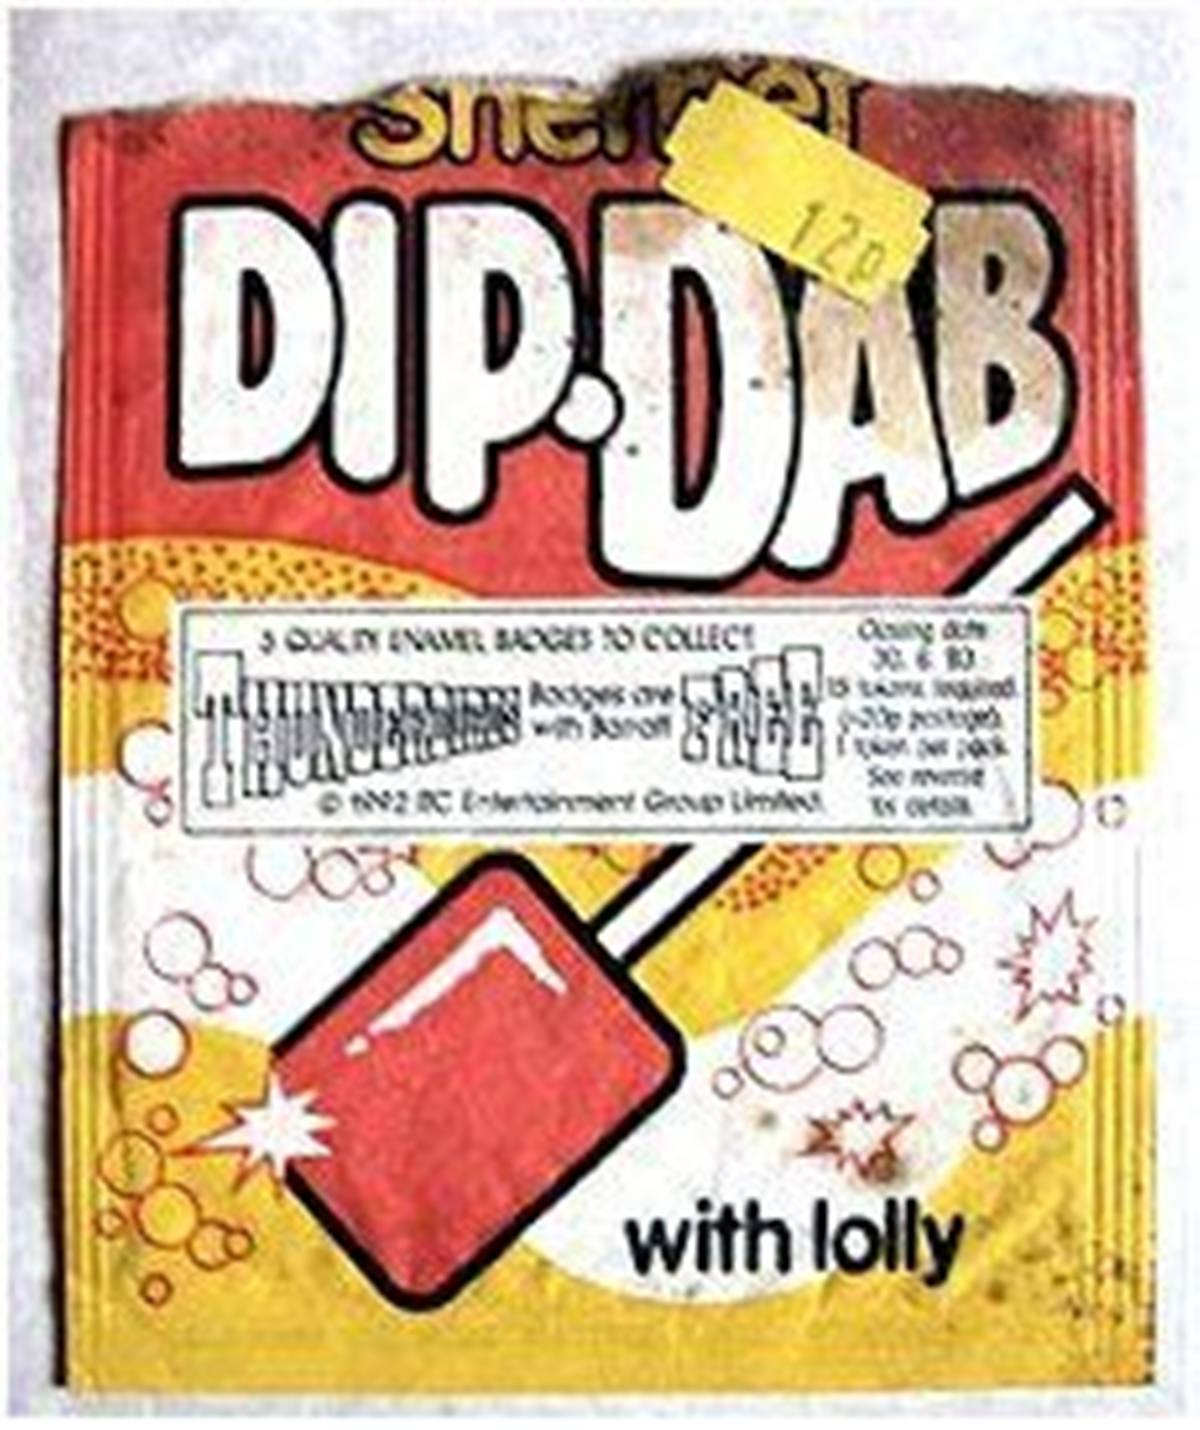 142 If You Remember At Least 10 Of These 14 Sweets Then You're A TRUE 80s Child!